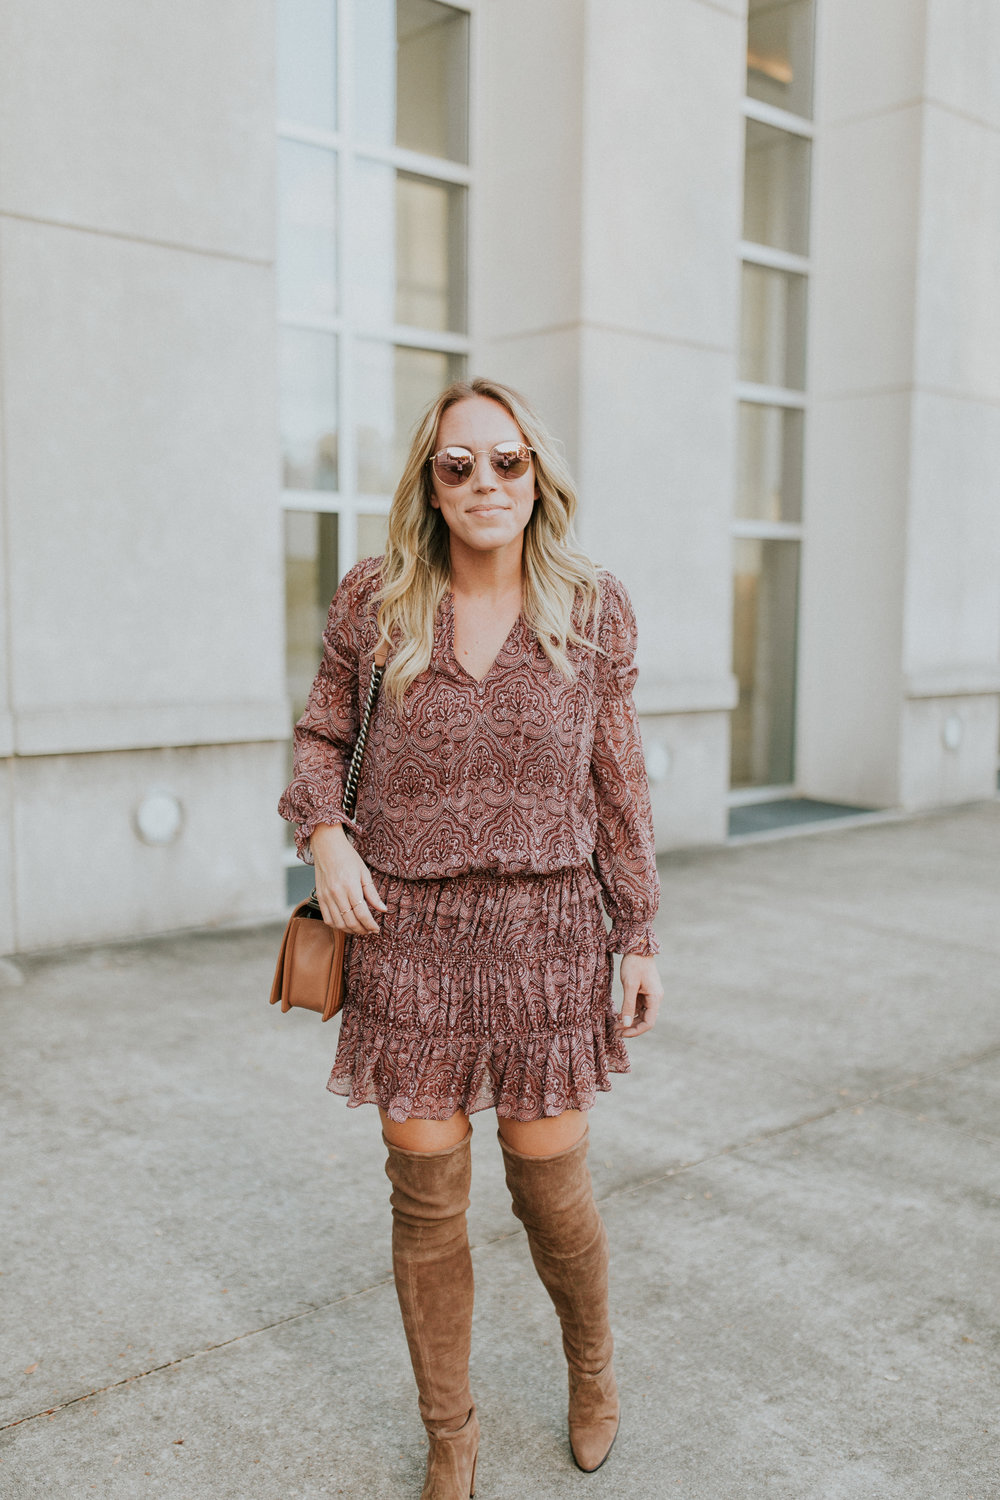 Blogger Gracefully Taylored in Joie Dress and Stuart Weitzman Boots(3).jpg